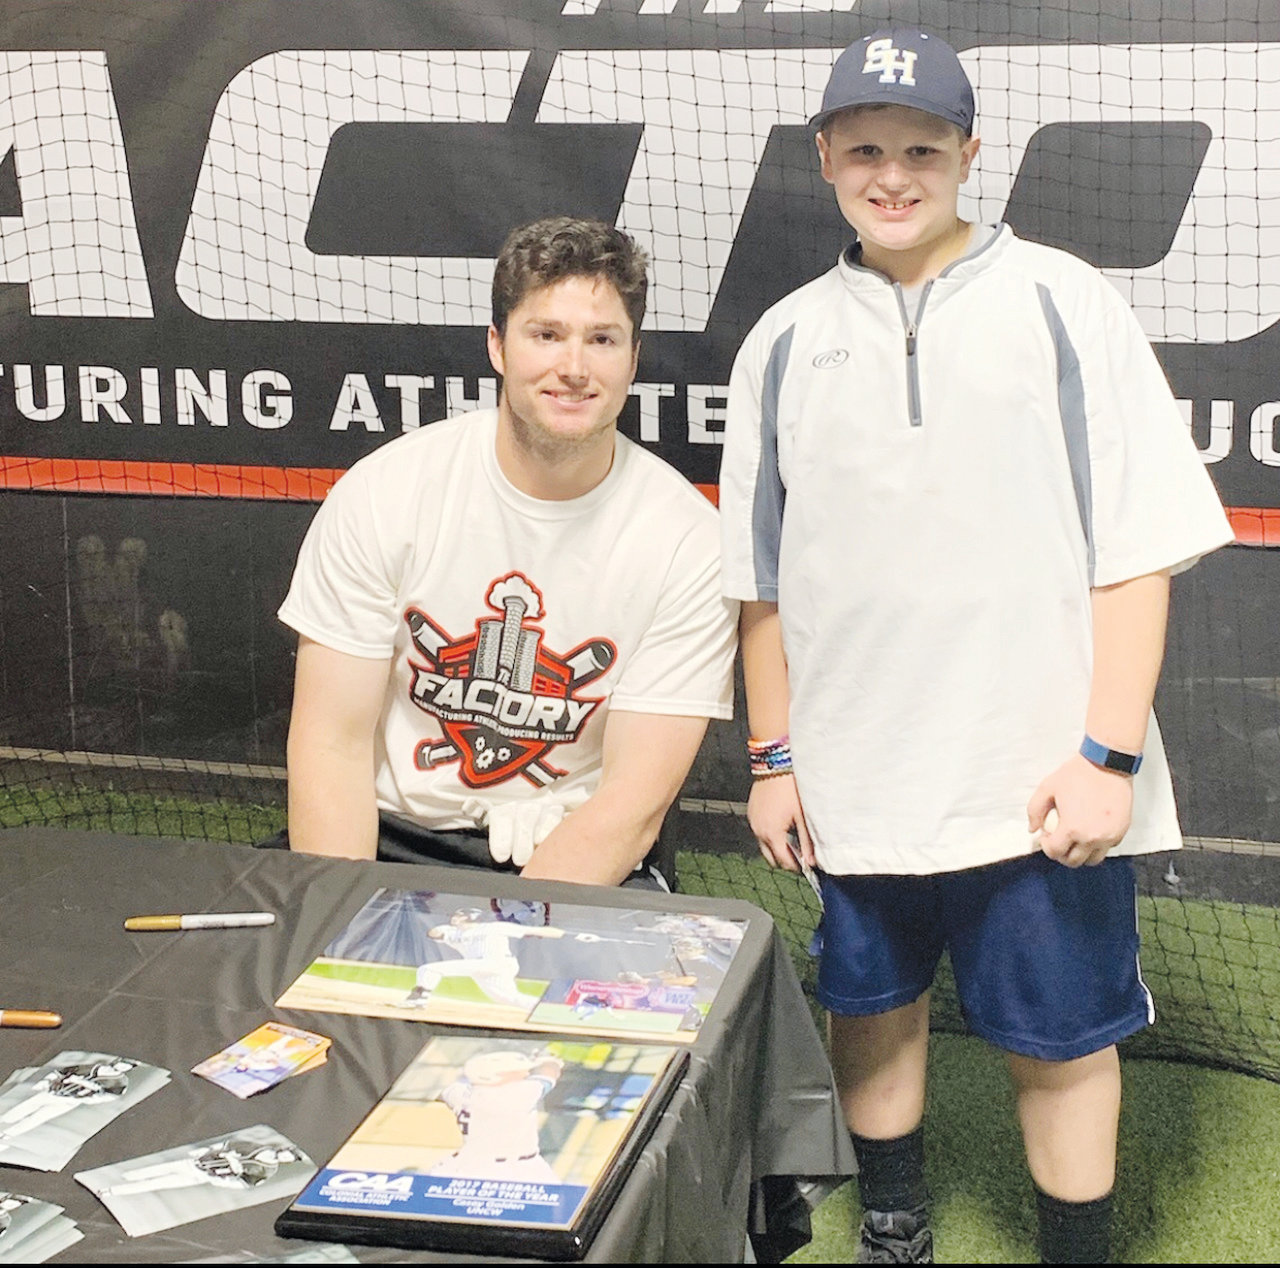 Casey Golden (left) poses with a local fan on Friday night at the Factory in Siler City. Golden hosted an event for area youth league players before heading out to Arizona on Sunday for the start of Spring Training.